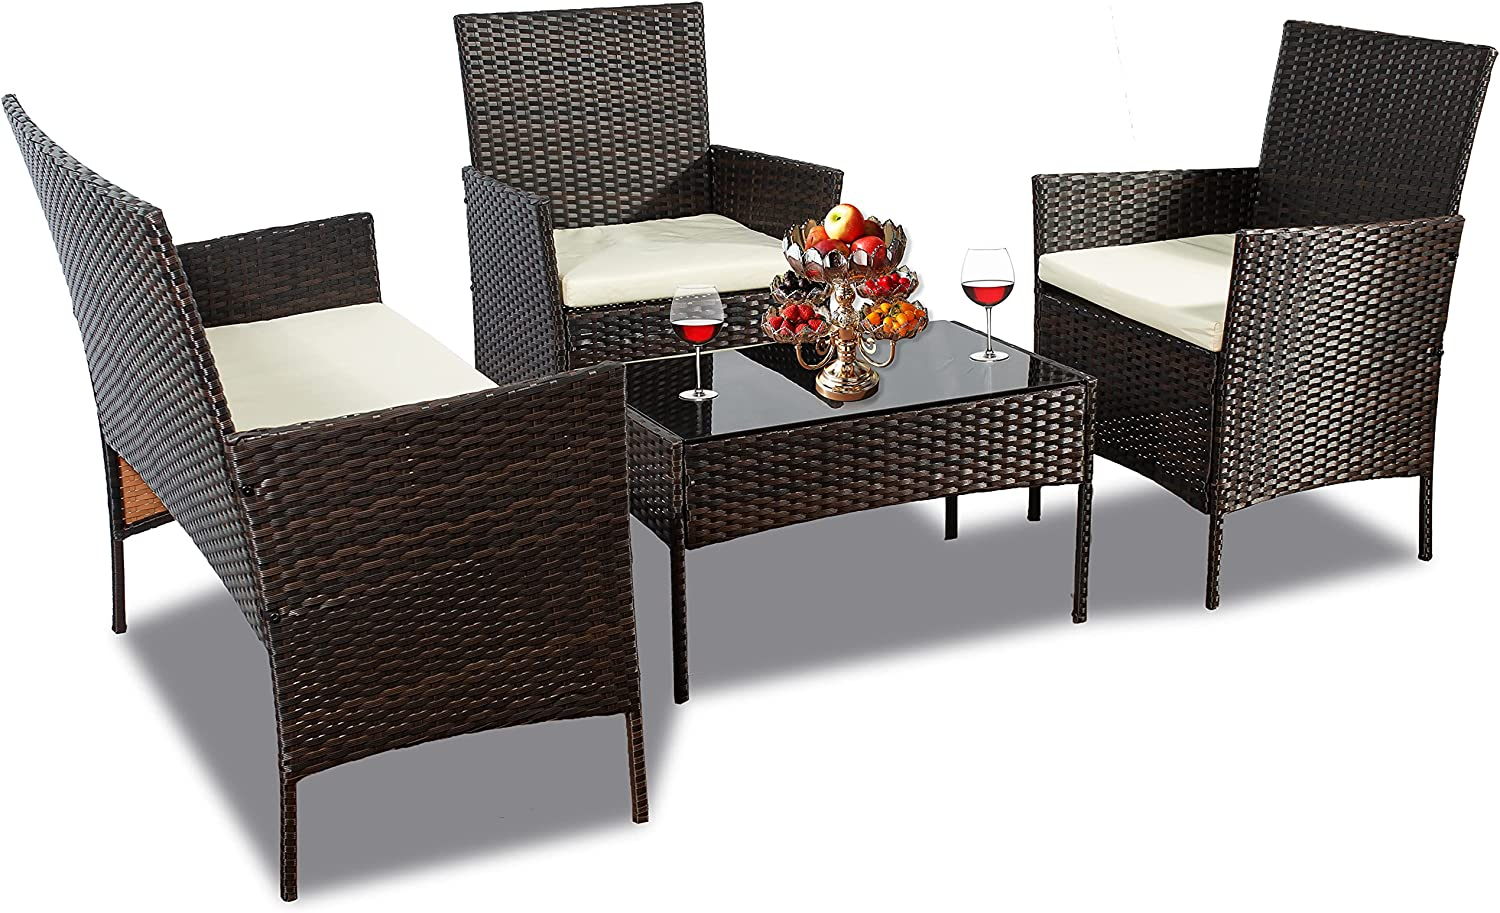 4 PC Wicker Patio New arrival Outdoor Furniture PE Ratta 3 Outlet ☆ Free Shipping Set Pieces